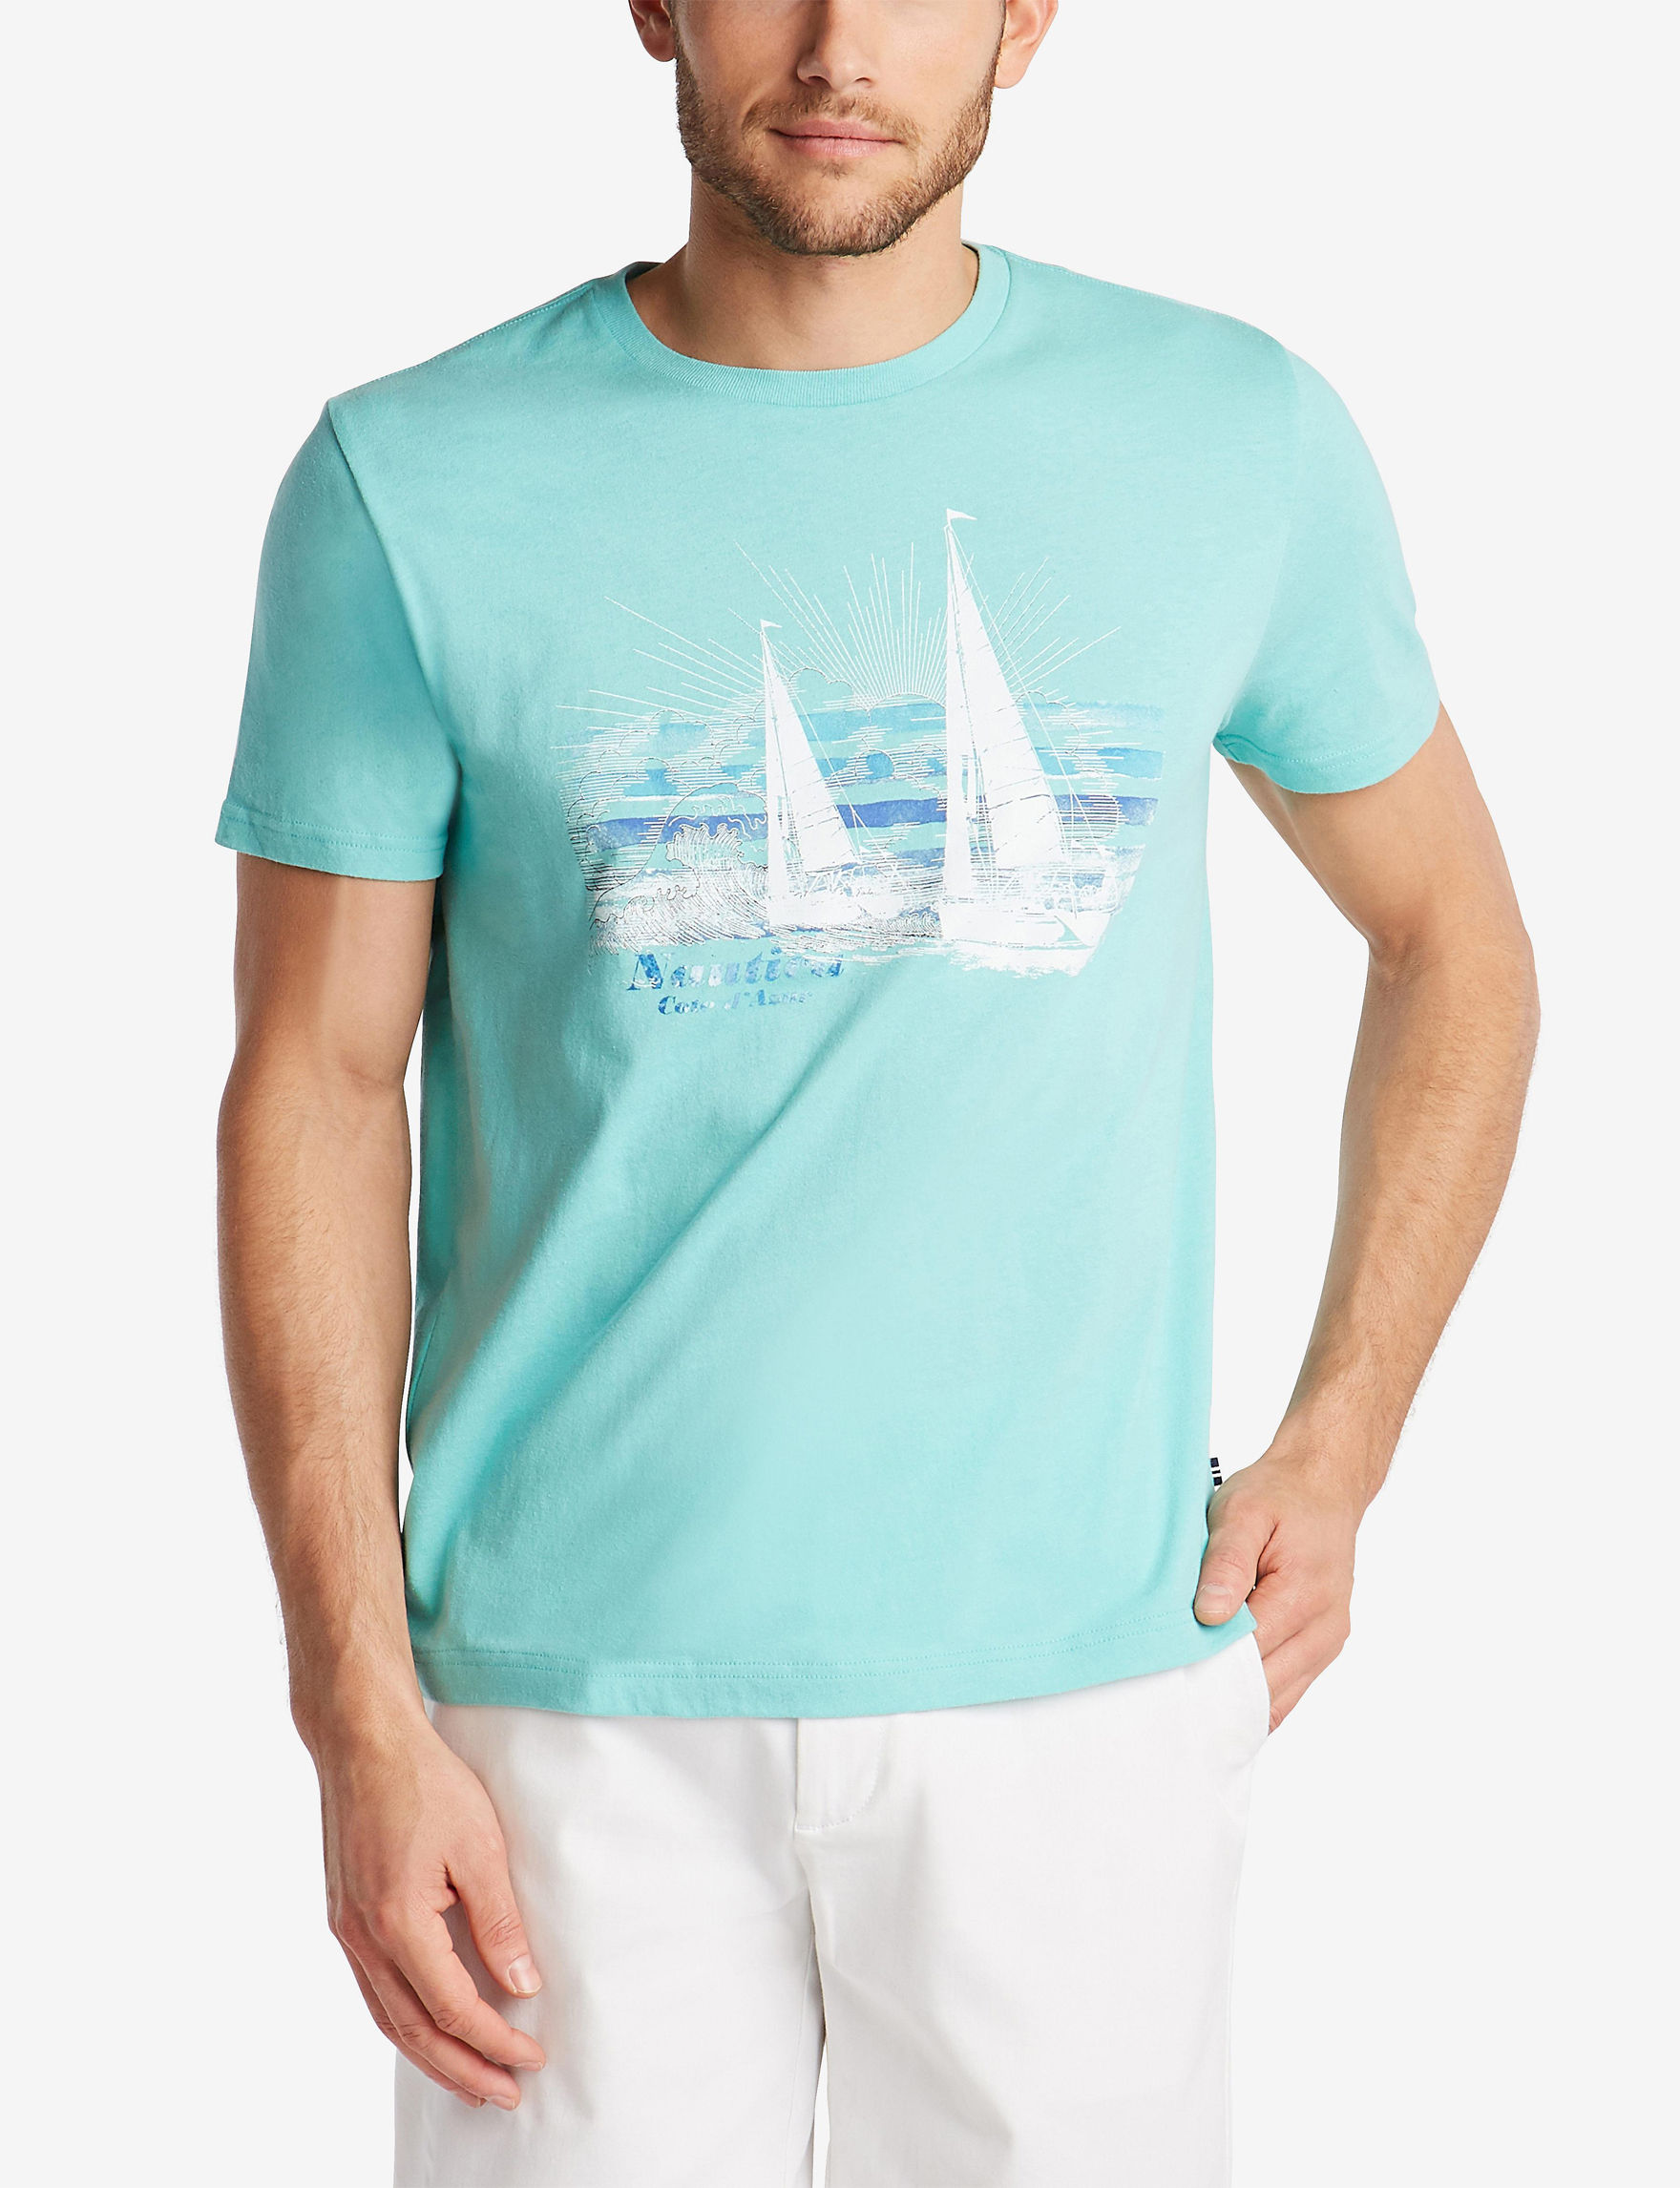 Nautica Poolside Aqua Tees & Tanks